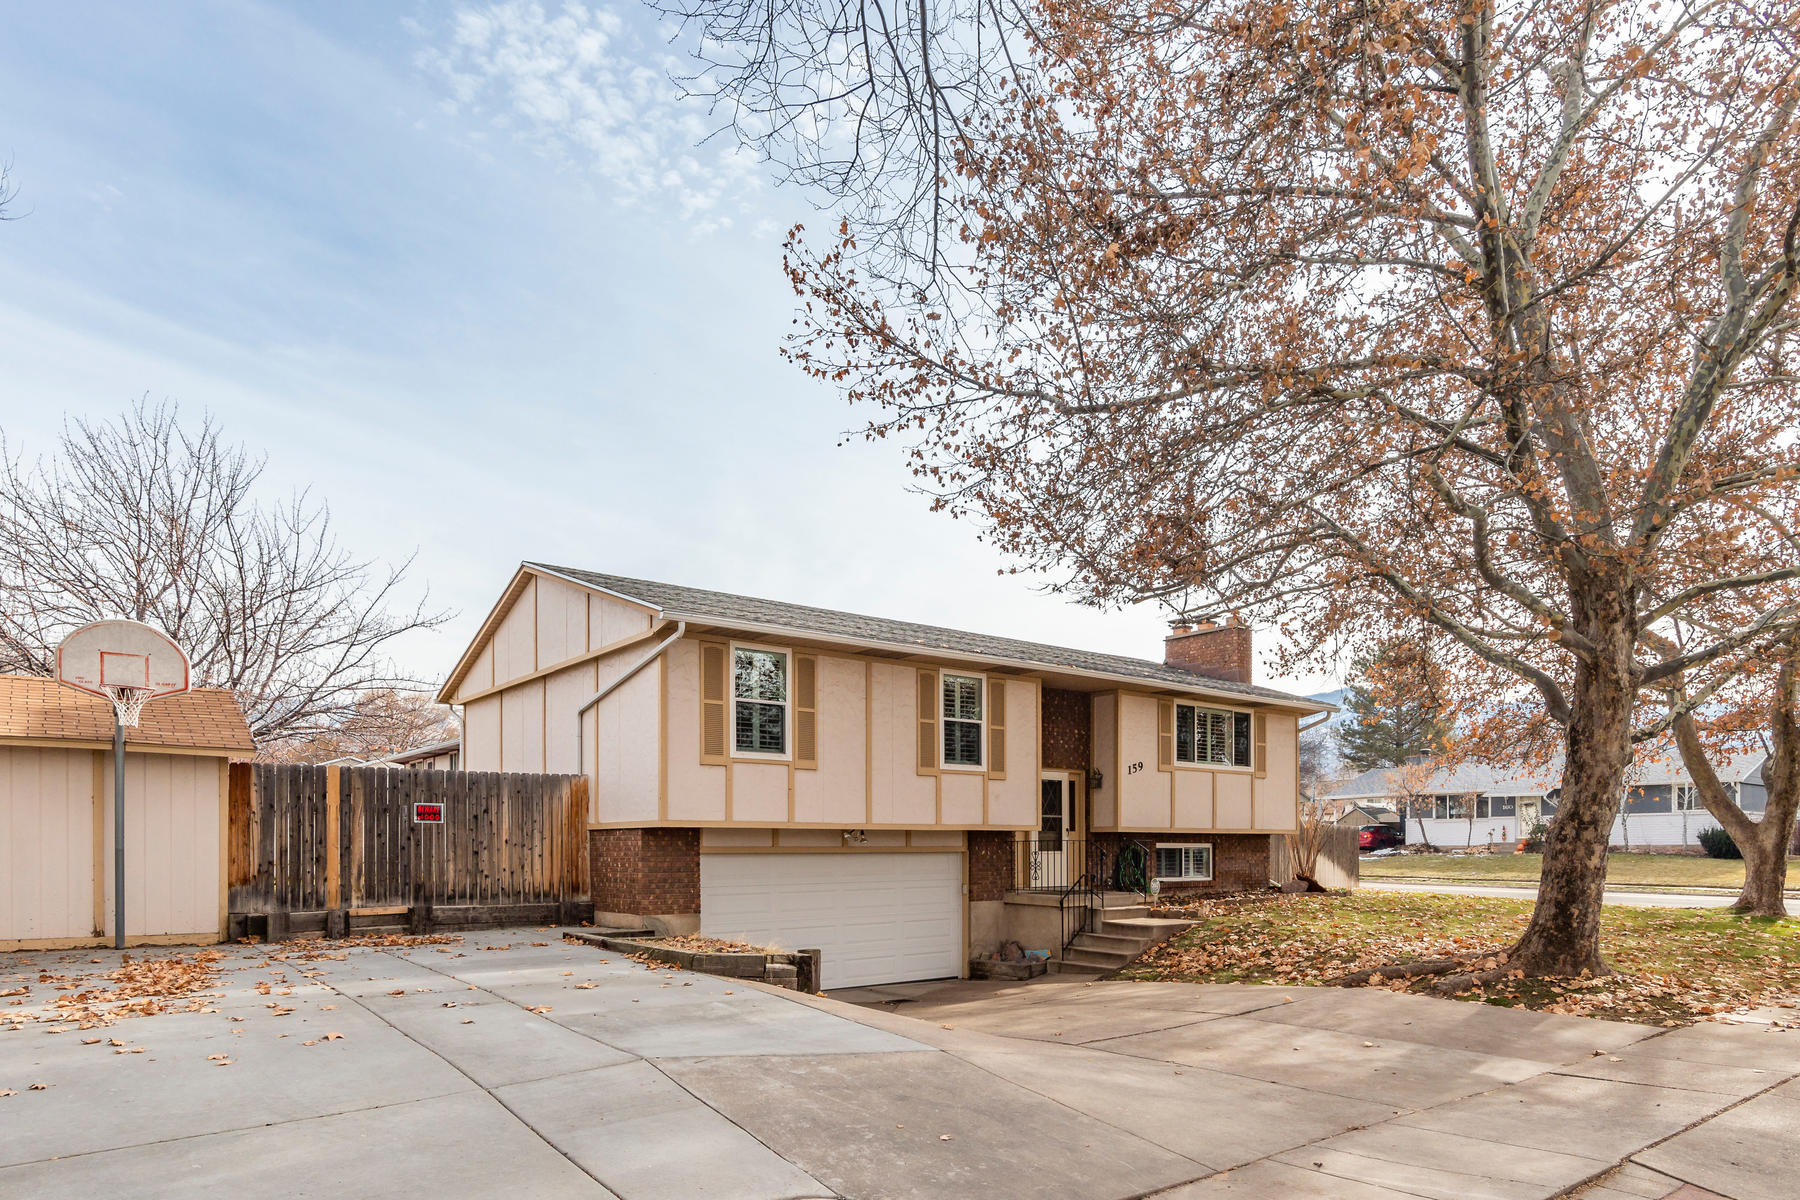 Single Family Homes for Active at Minutes from Downtown Salt Lake City 159 E Wilson North Salt Lake, Utah 84054 United States